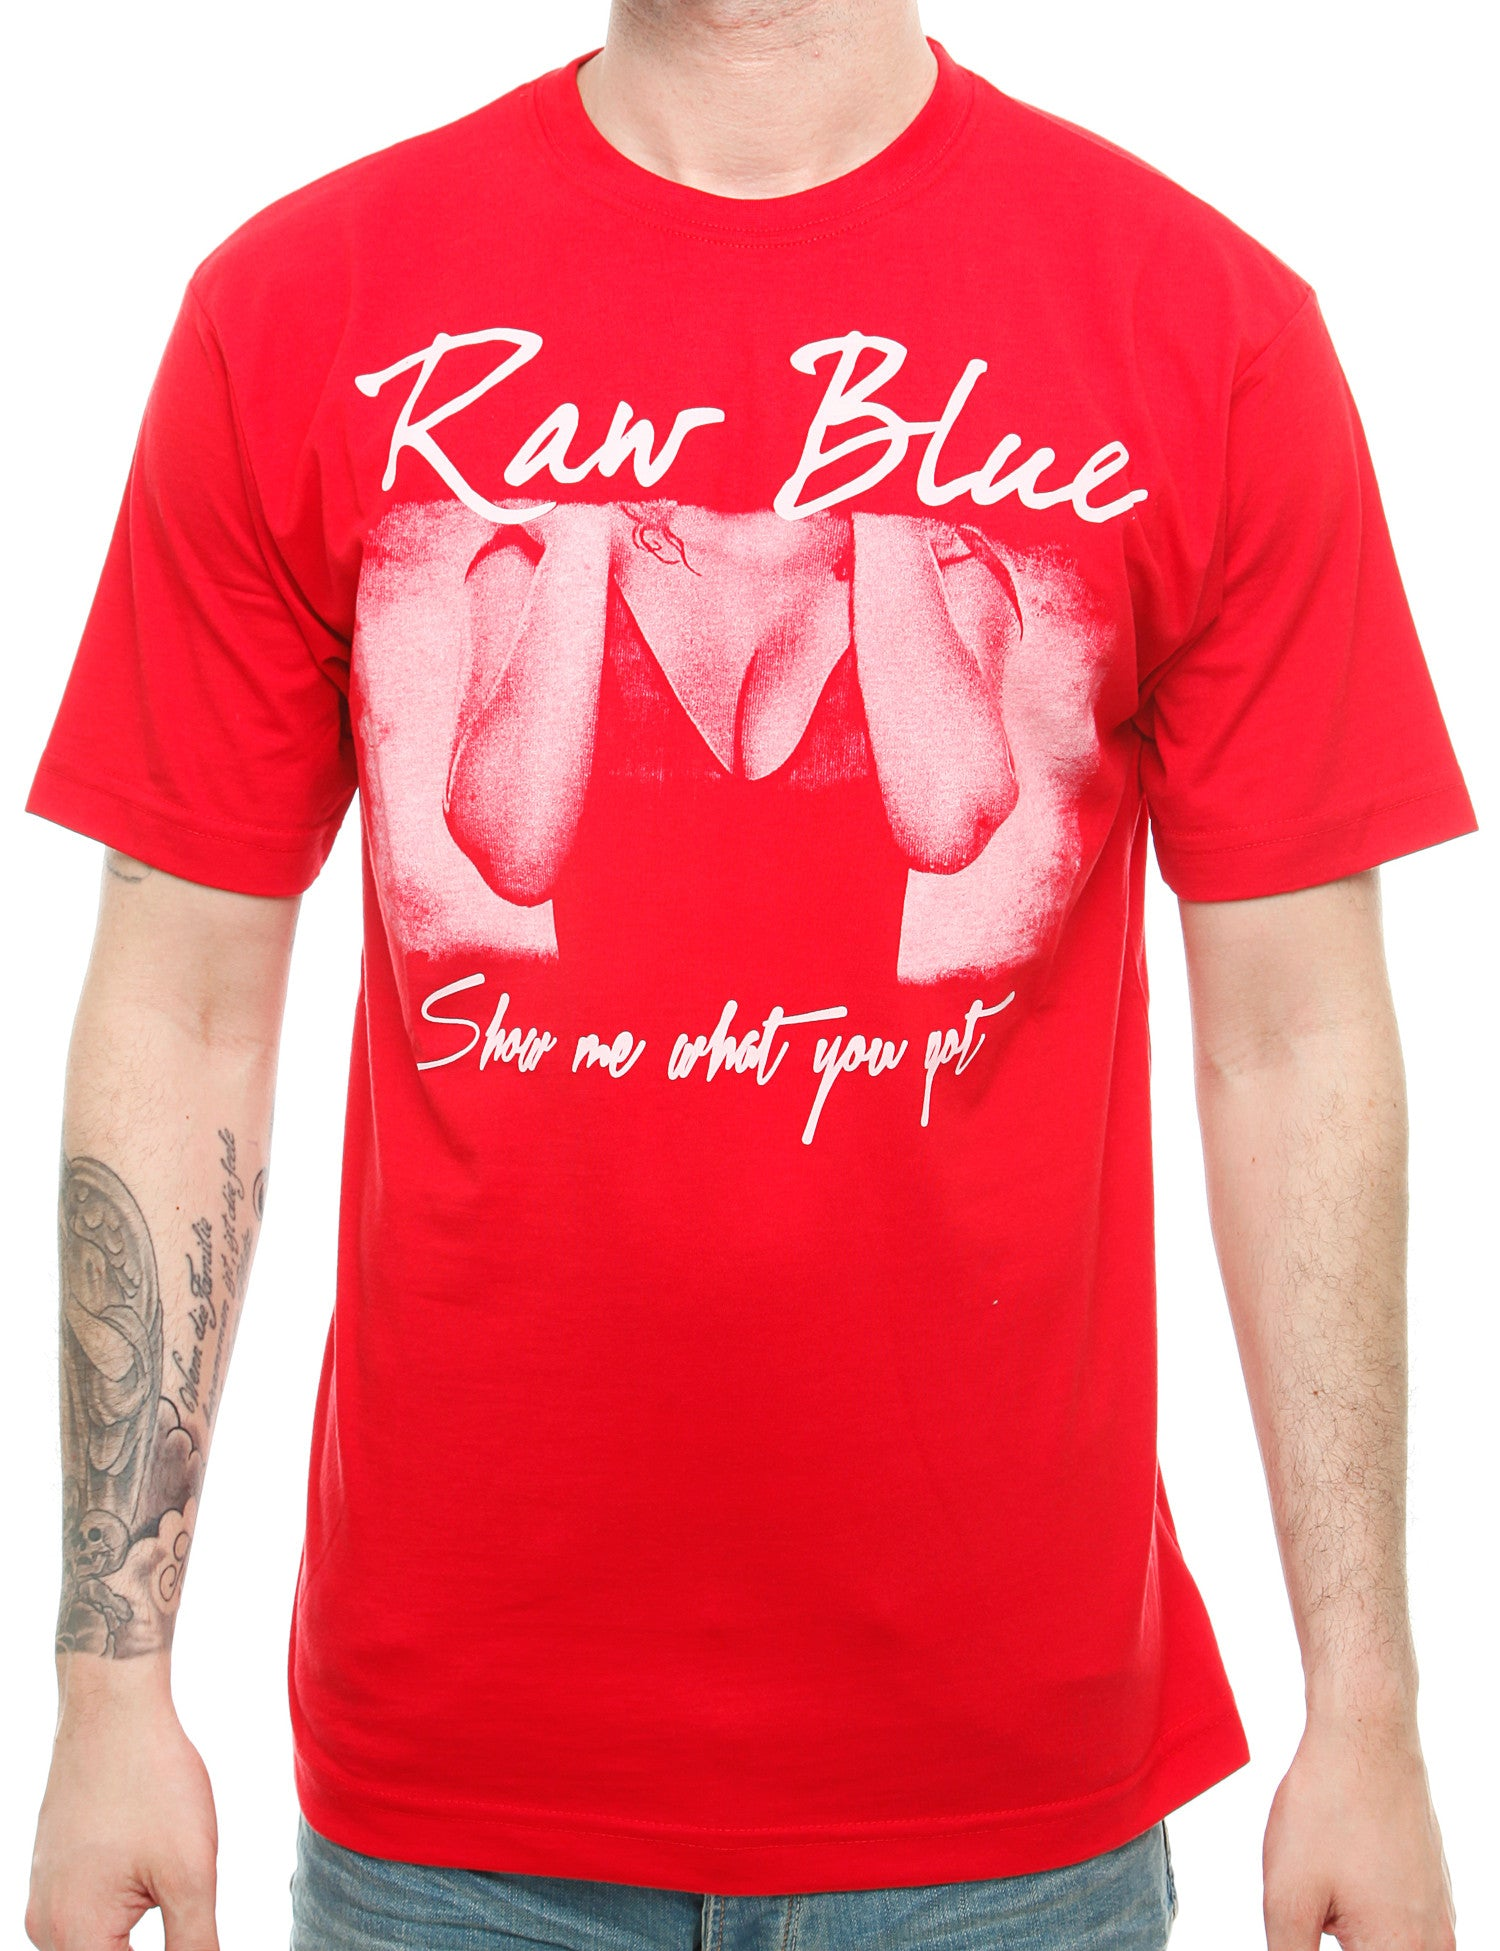 Raw Blue Hottie T-Shirt RB16-003 Red Red